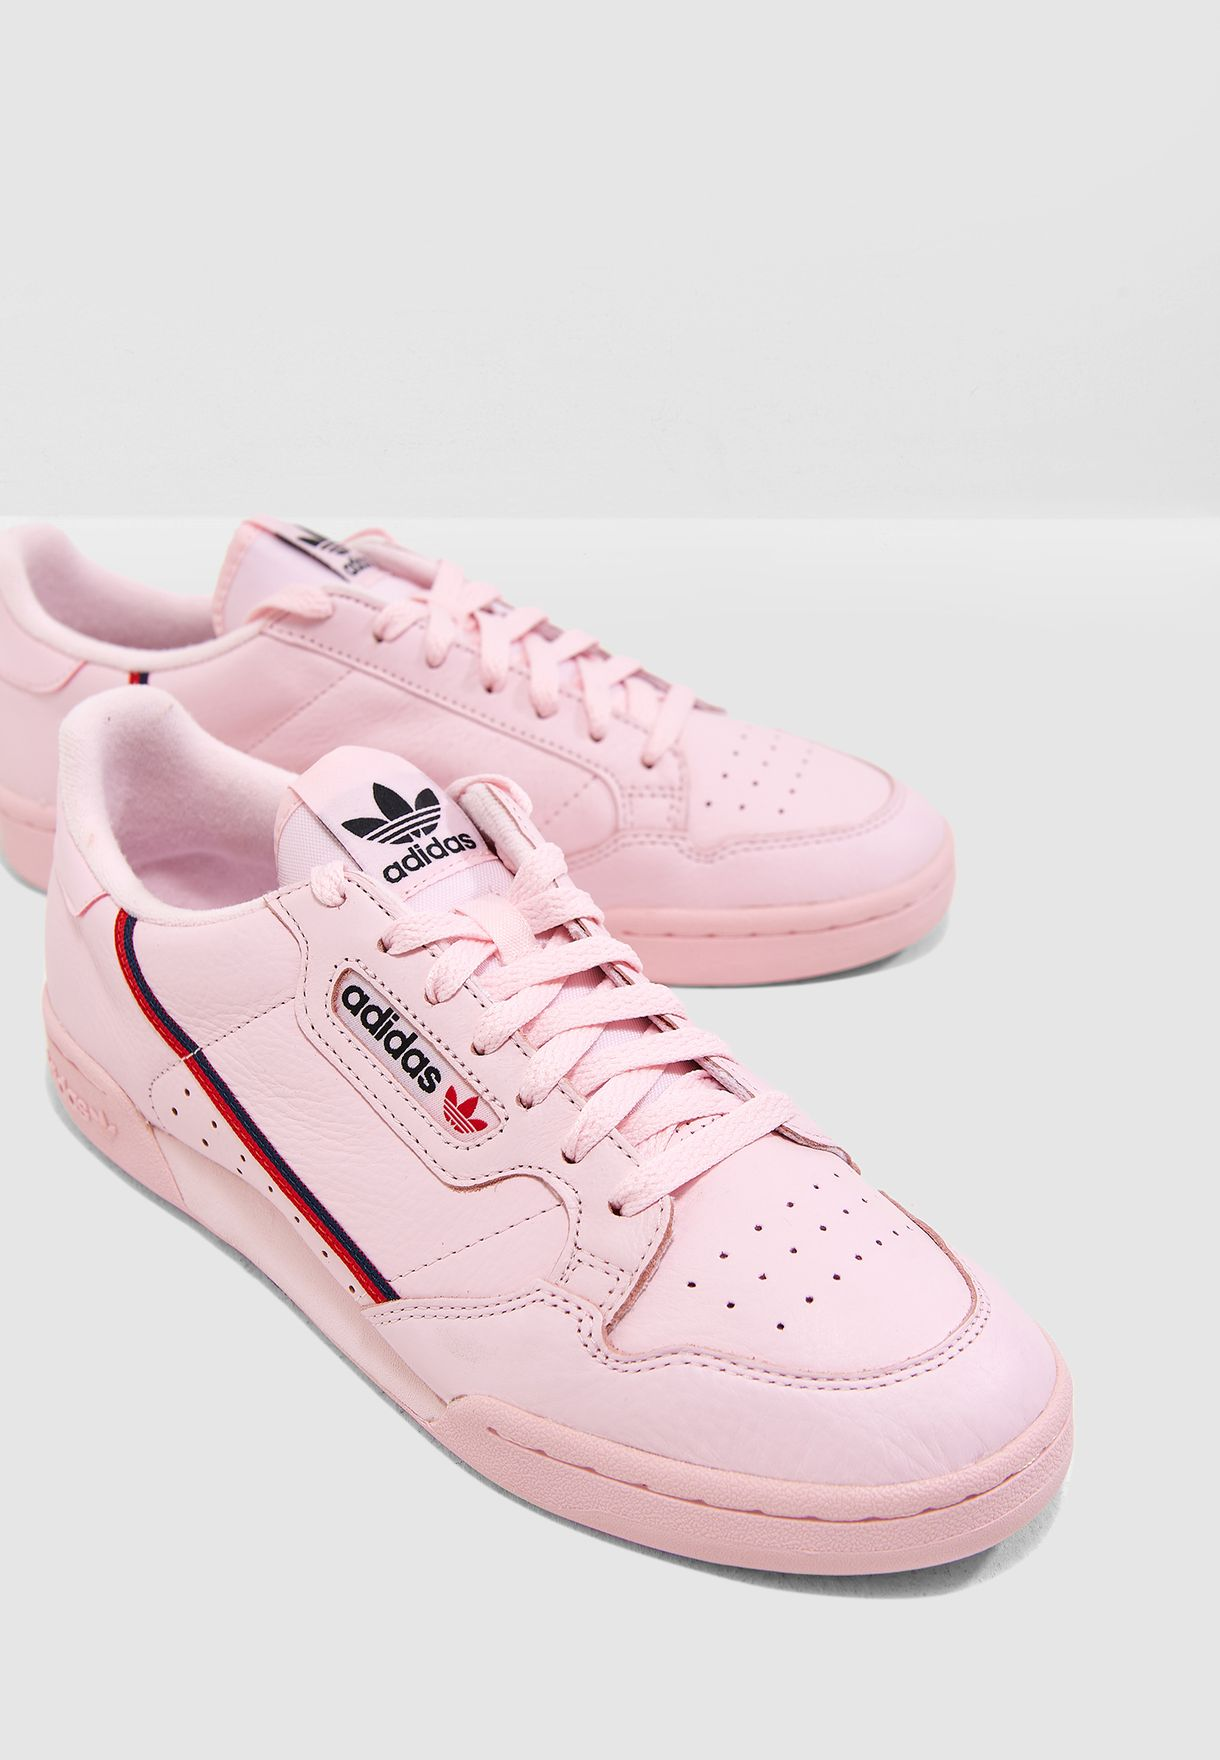 6d9c86742 Shop adidas Originals pink Continental 80 B41679 for Men in UAE ...